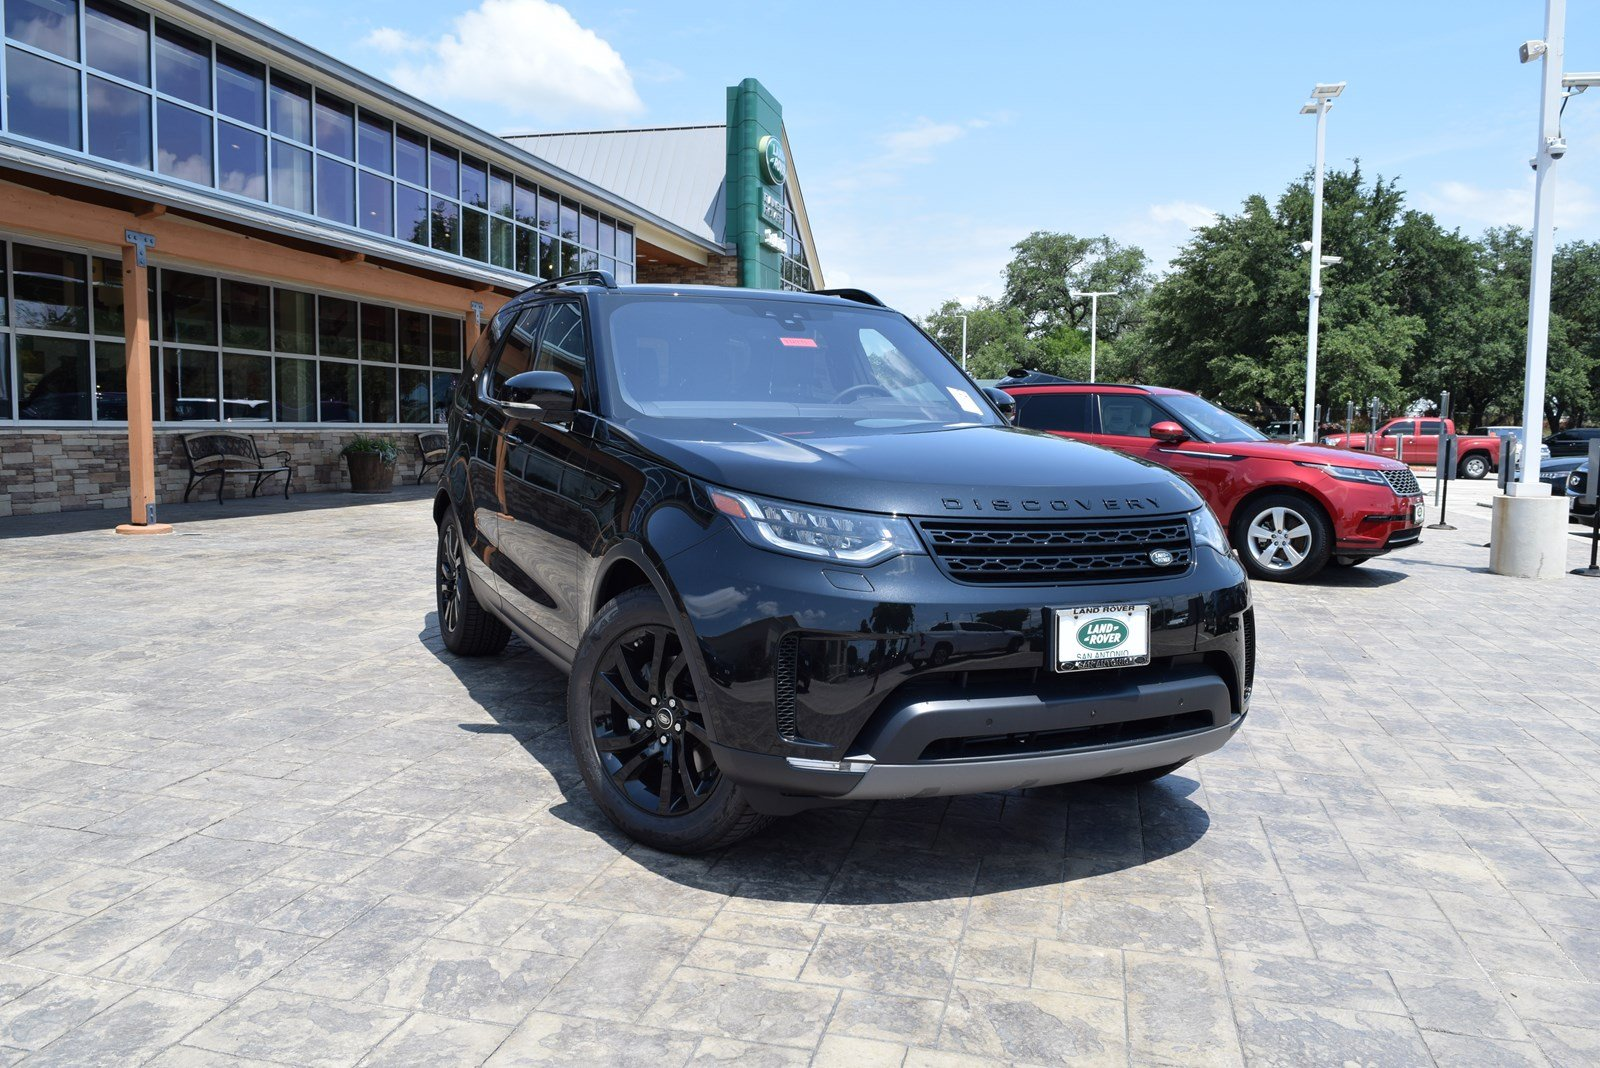 Land Rover Discovery San Antonio >> New 2018 Land Rover Discovery Hse Luxury 4 Door In San Antonio